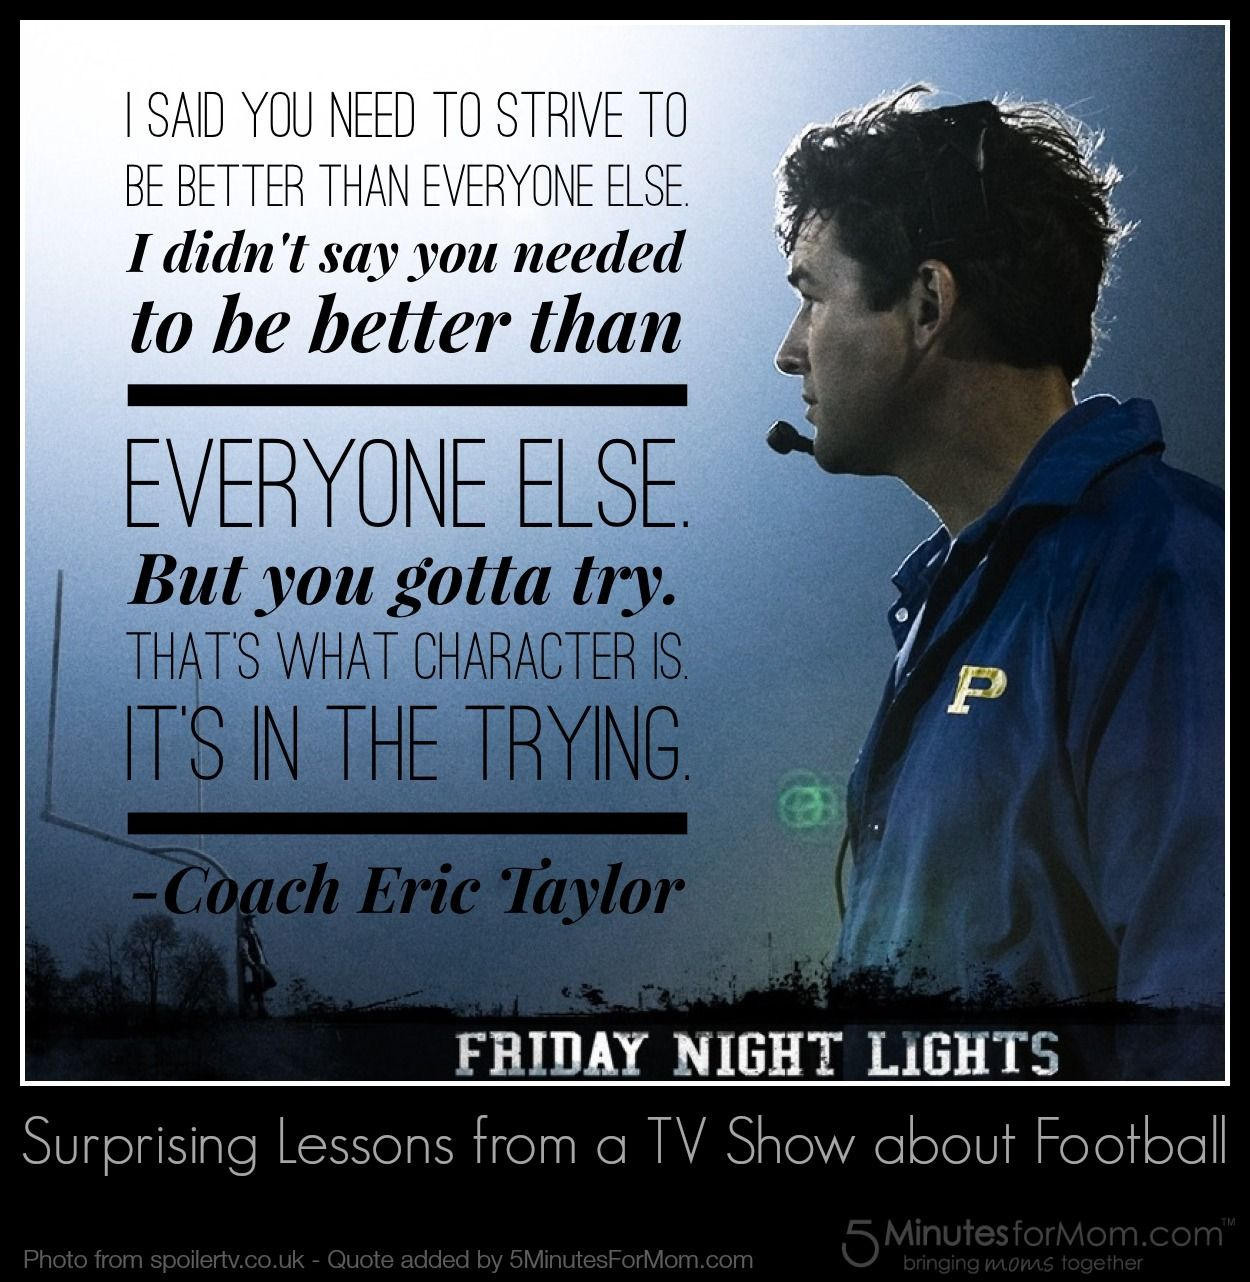 Night lights take my hand lyrics - Friday Night Lights Surprising Lessons From A Tv Show About Football